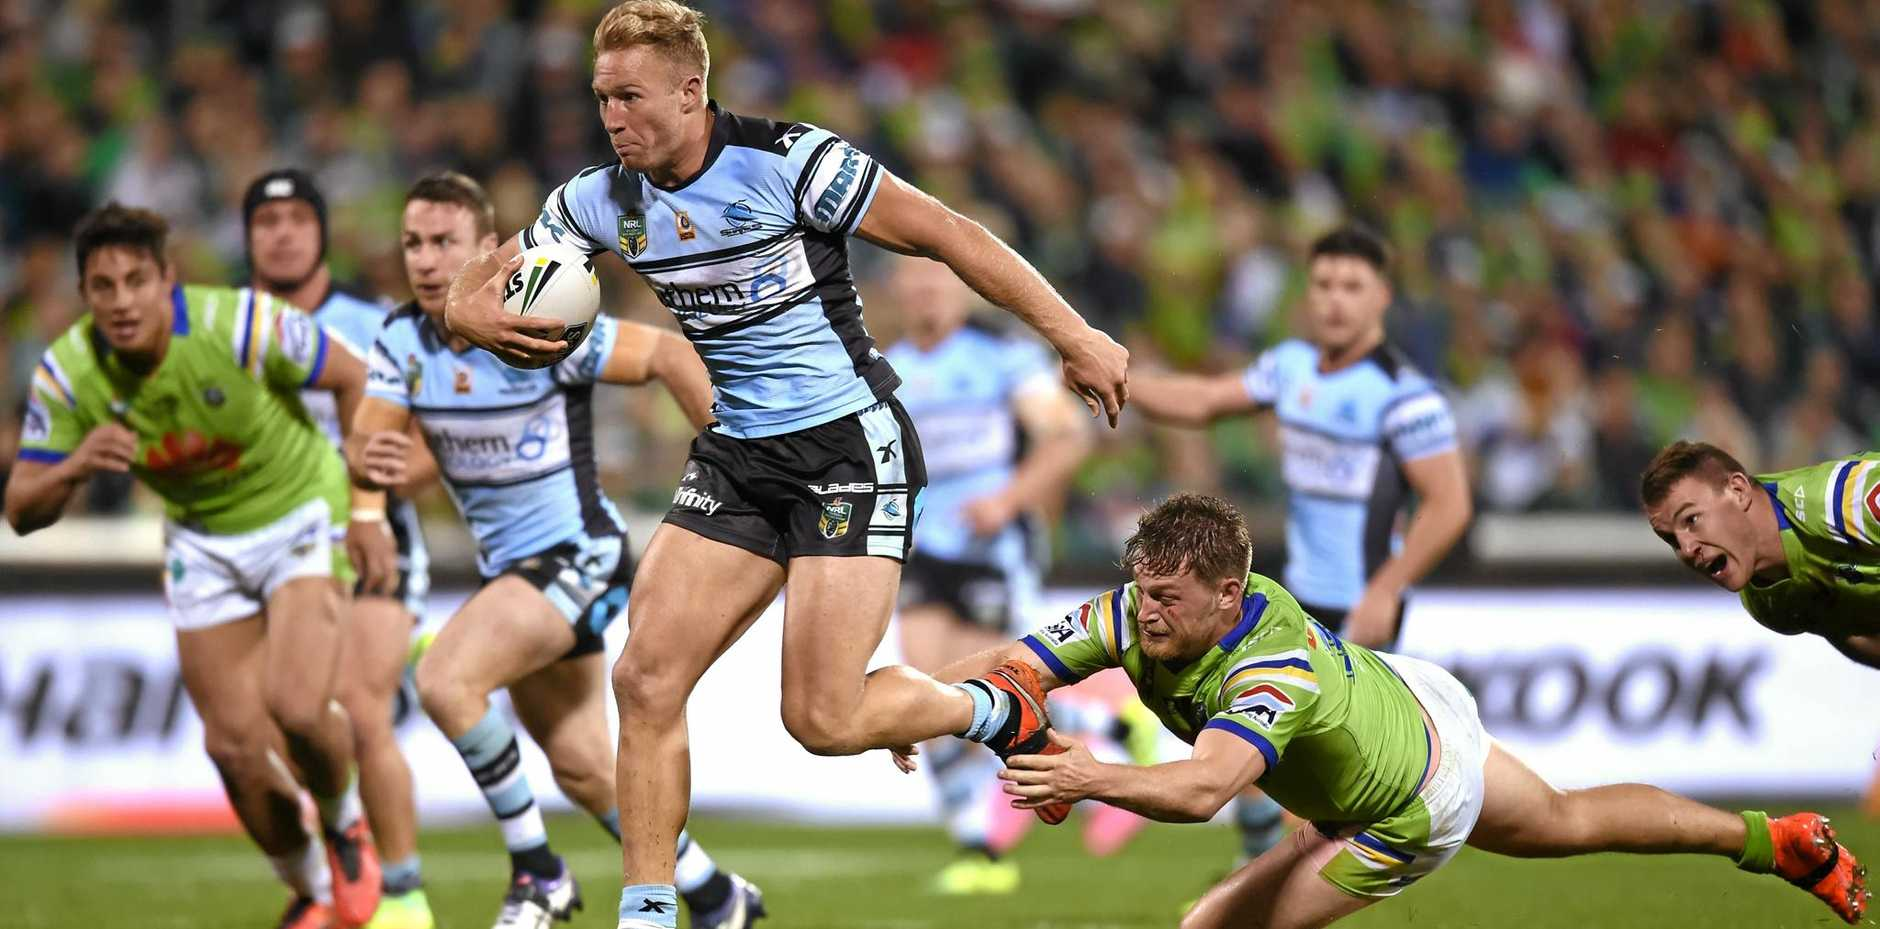 Matt Prior of the Sharks gets past a tackle by Elliot Whitehead of the Raiders during their NRL qualifying final.